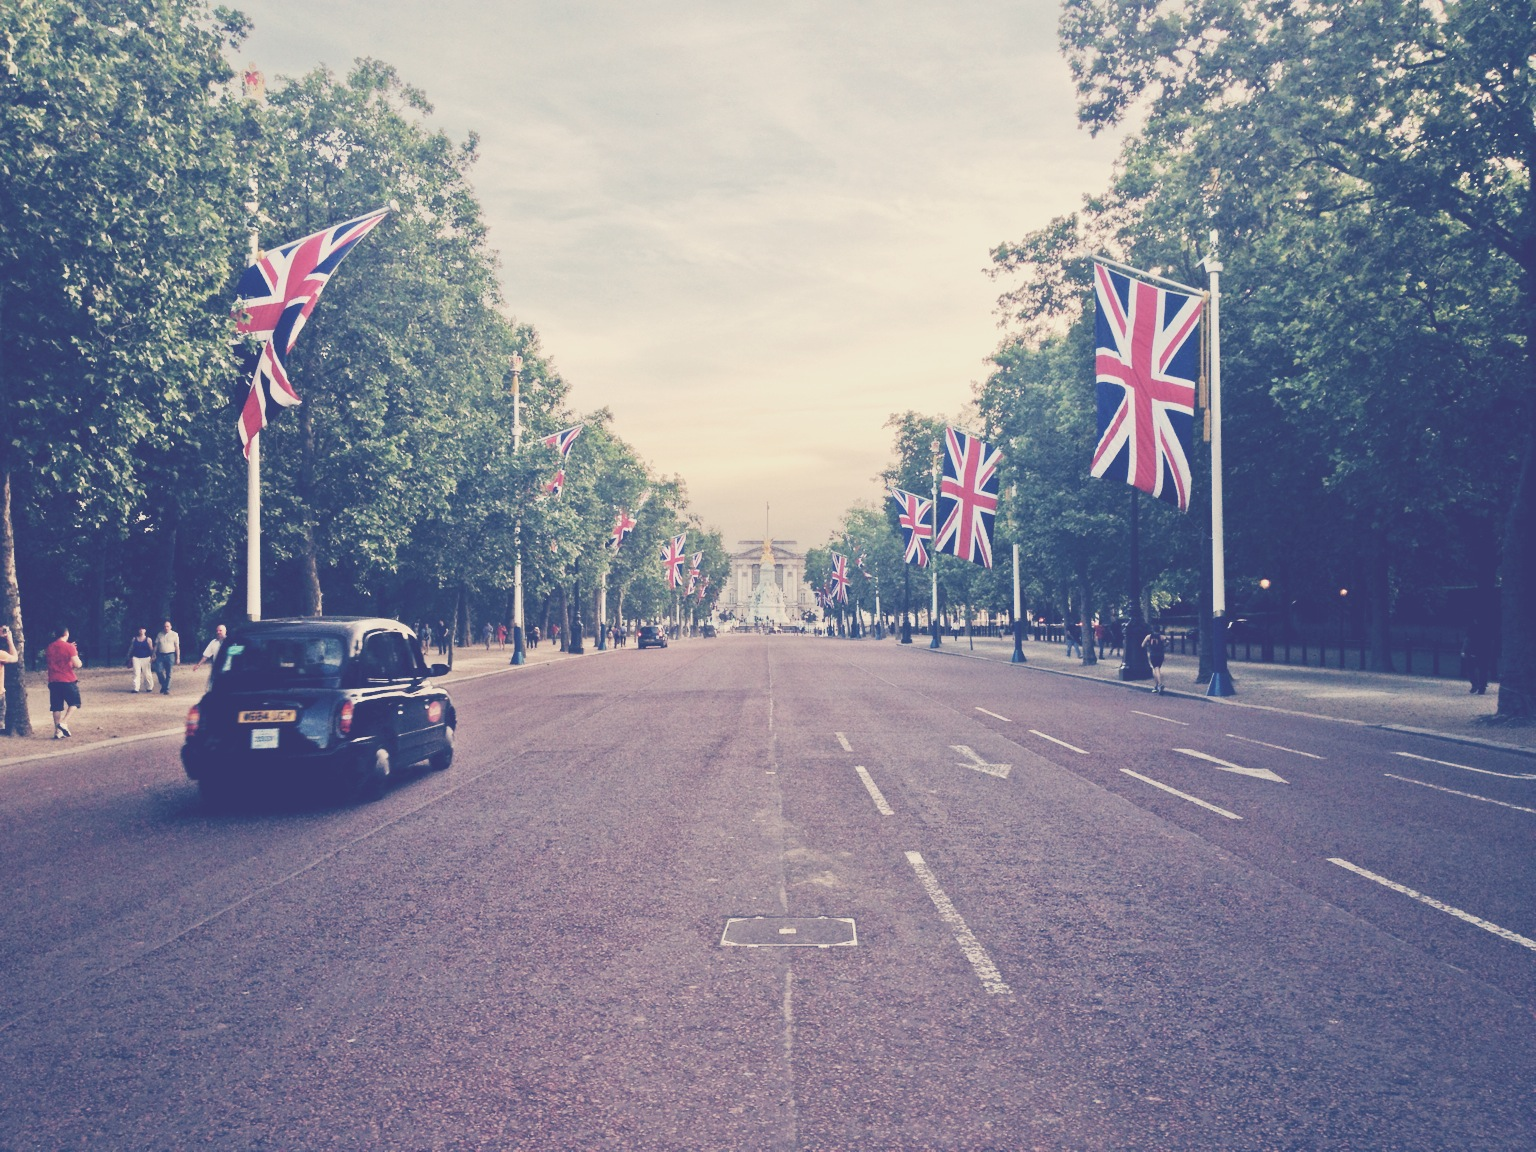 Buckingham Palace at end of The Mall